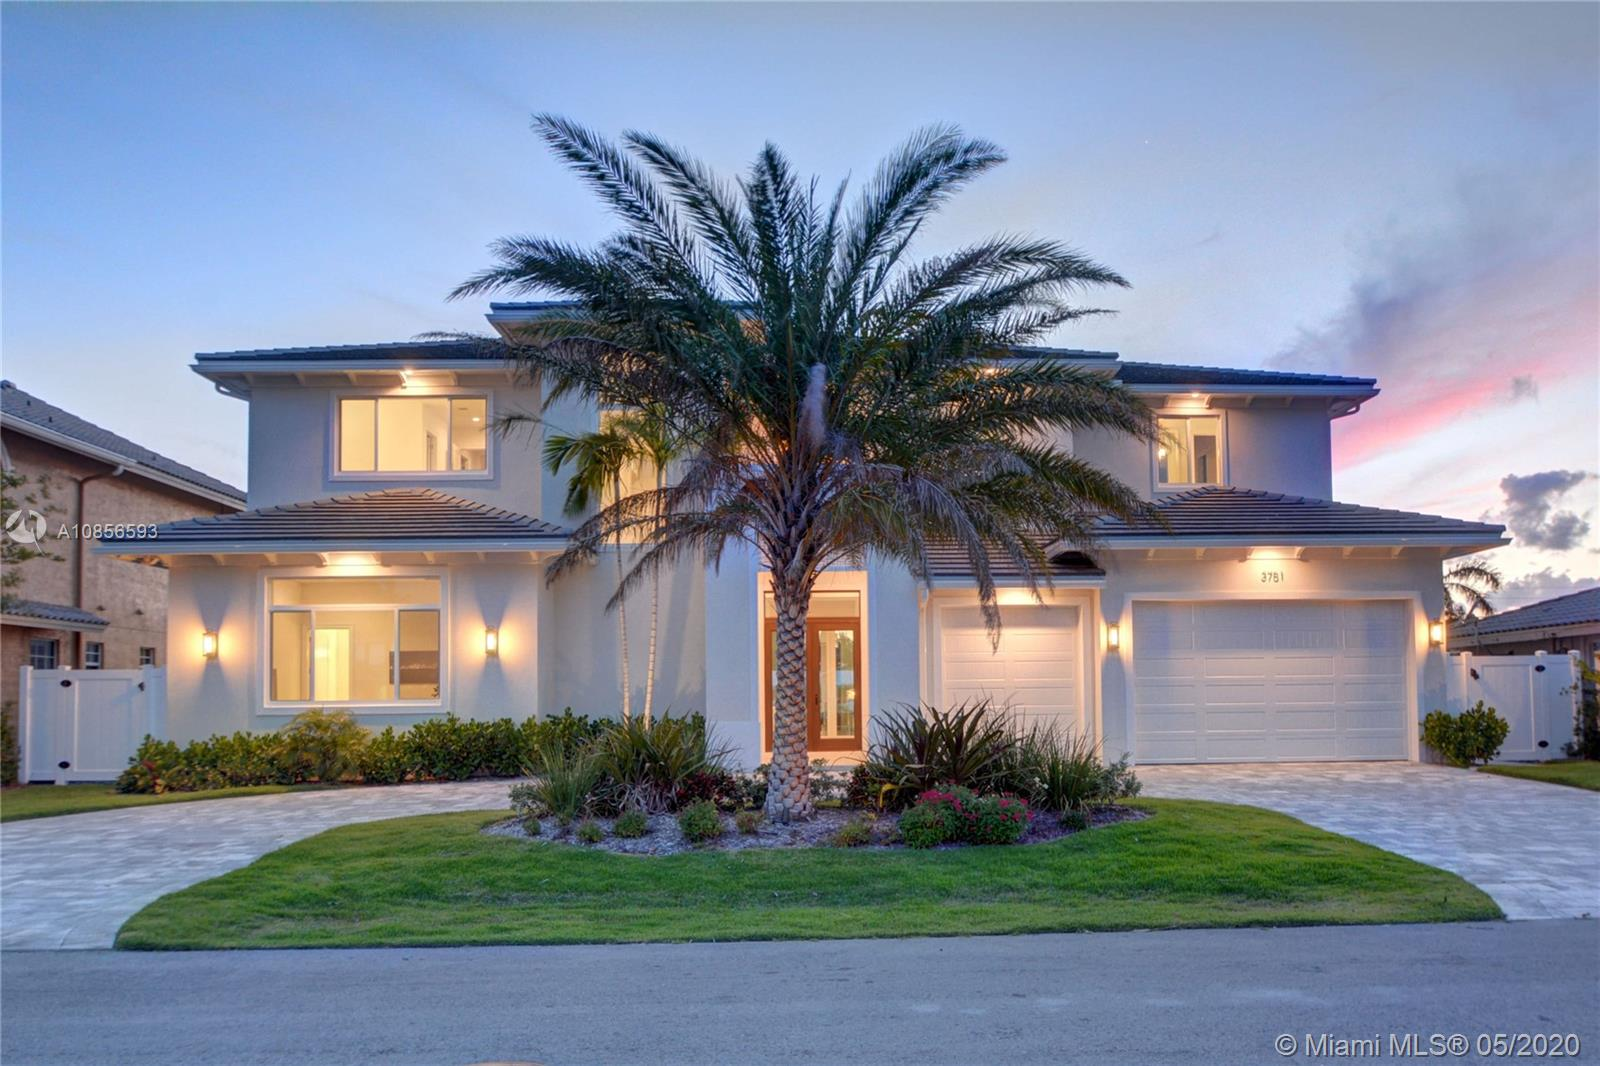 Beautiful coastal-inspired estate in highly desired Lighthouse Point. This 2017 built and meticulously designed 5 bedroom, 6 bathroom home impresses with a bright open floor plan and uncompromising quality and craftsmanship. Gorgeous open space kitchen with high-end appliances, custom cabinetry, pantry and more. Living room features breathtaking full-width floor-to-ceiling sliding glass doors leading to an expansive loggia with integrated summer kitchen and a resort-like pool with sun shelf entry. Luxurious oversized owner's suite with panoramic pool and water views. A boaters dream with full-service yacht dock, minutes to Hillsboro Inlet. This is the perfect home for living and entertaining in style. Fully furnished and move-in ready!